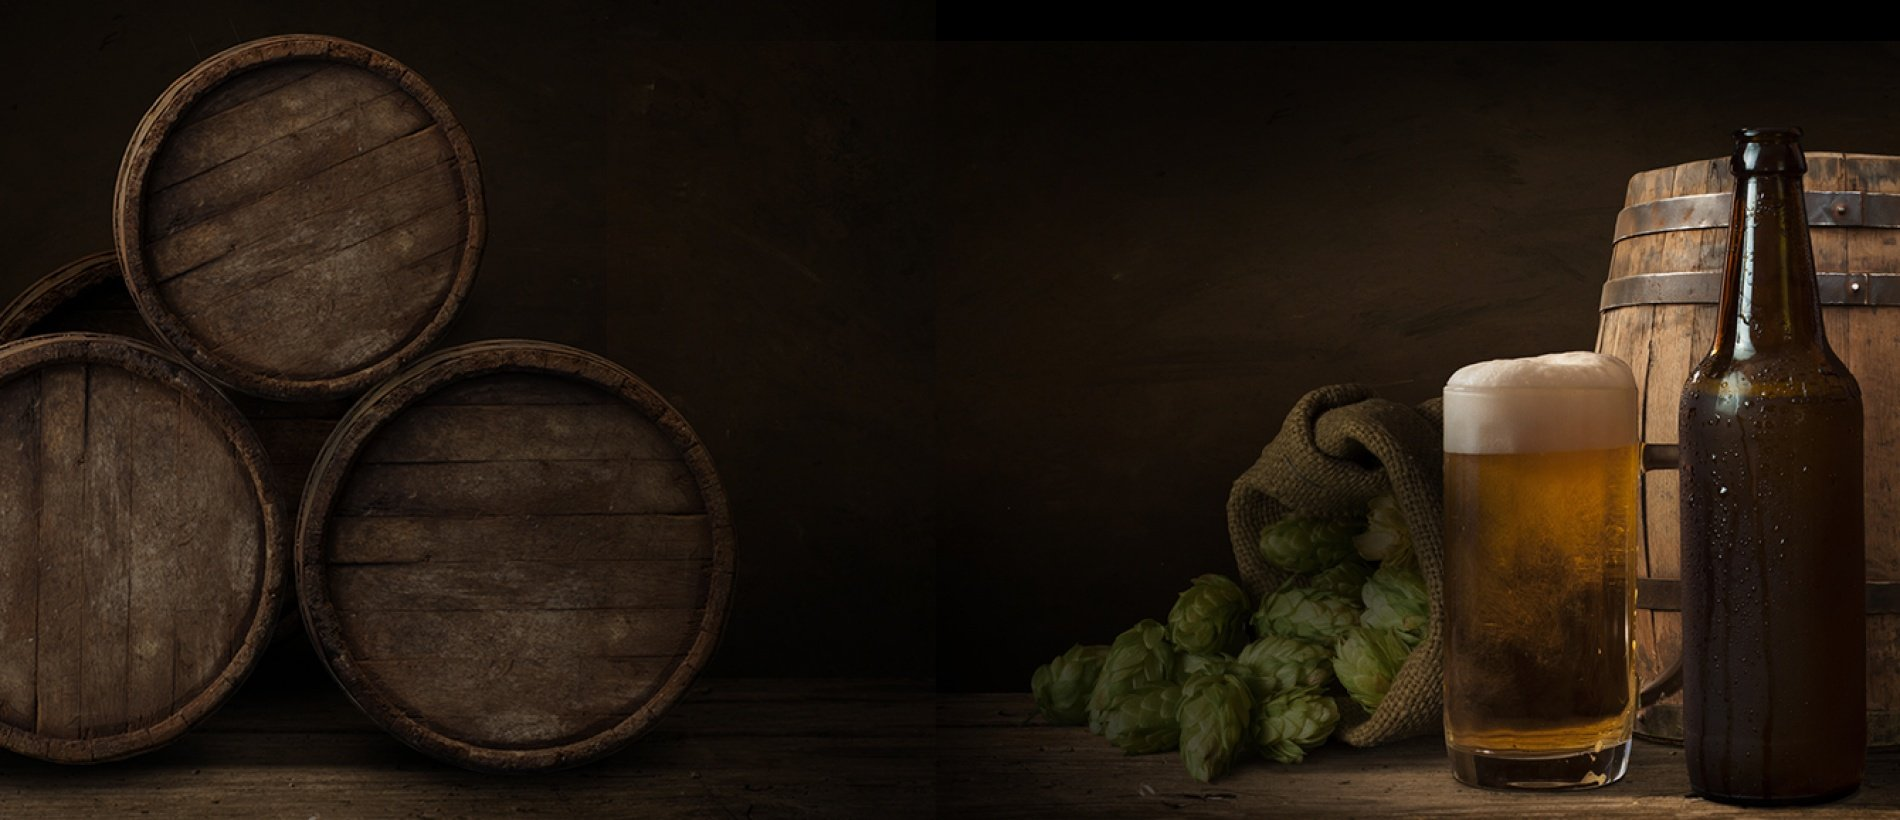 Taste our beer we make at our own brewery